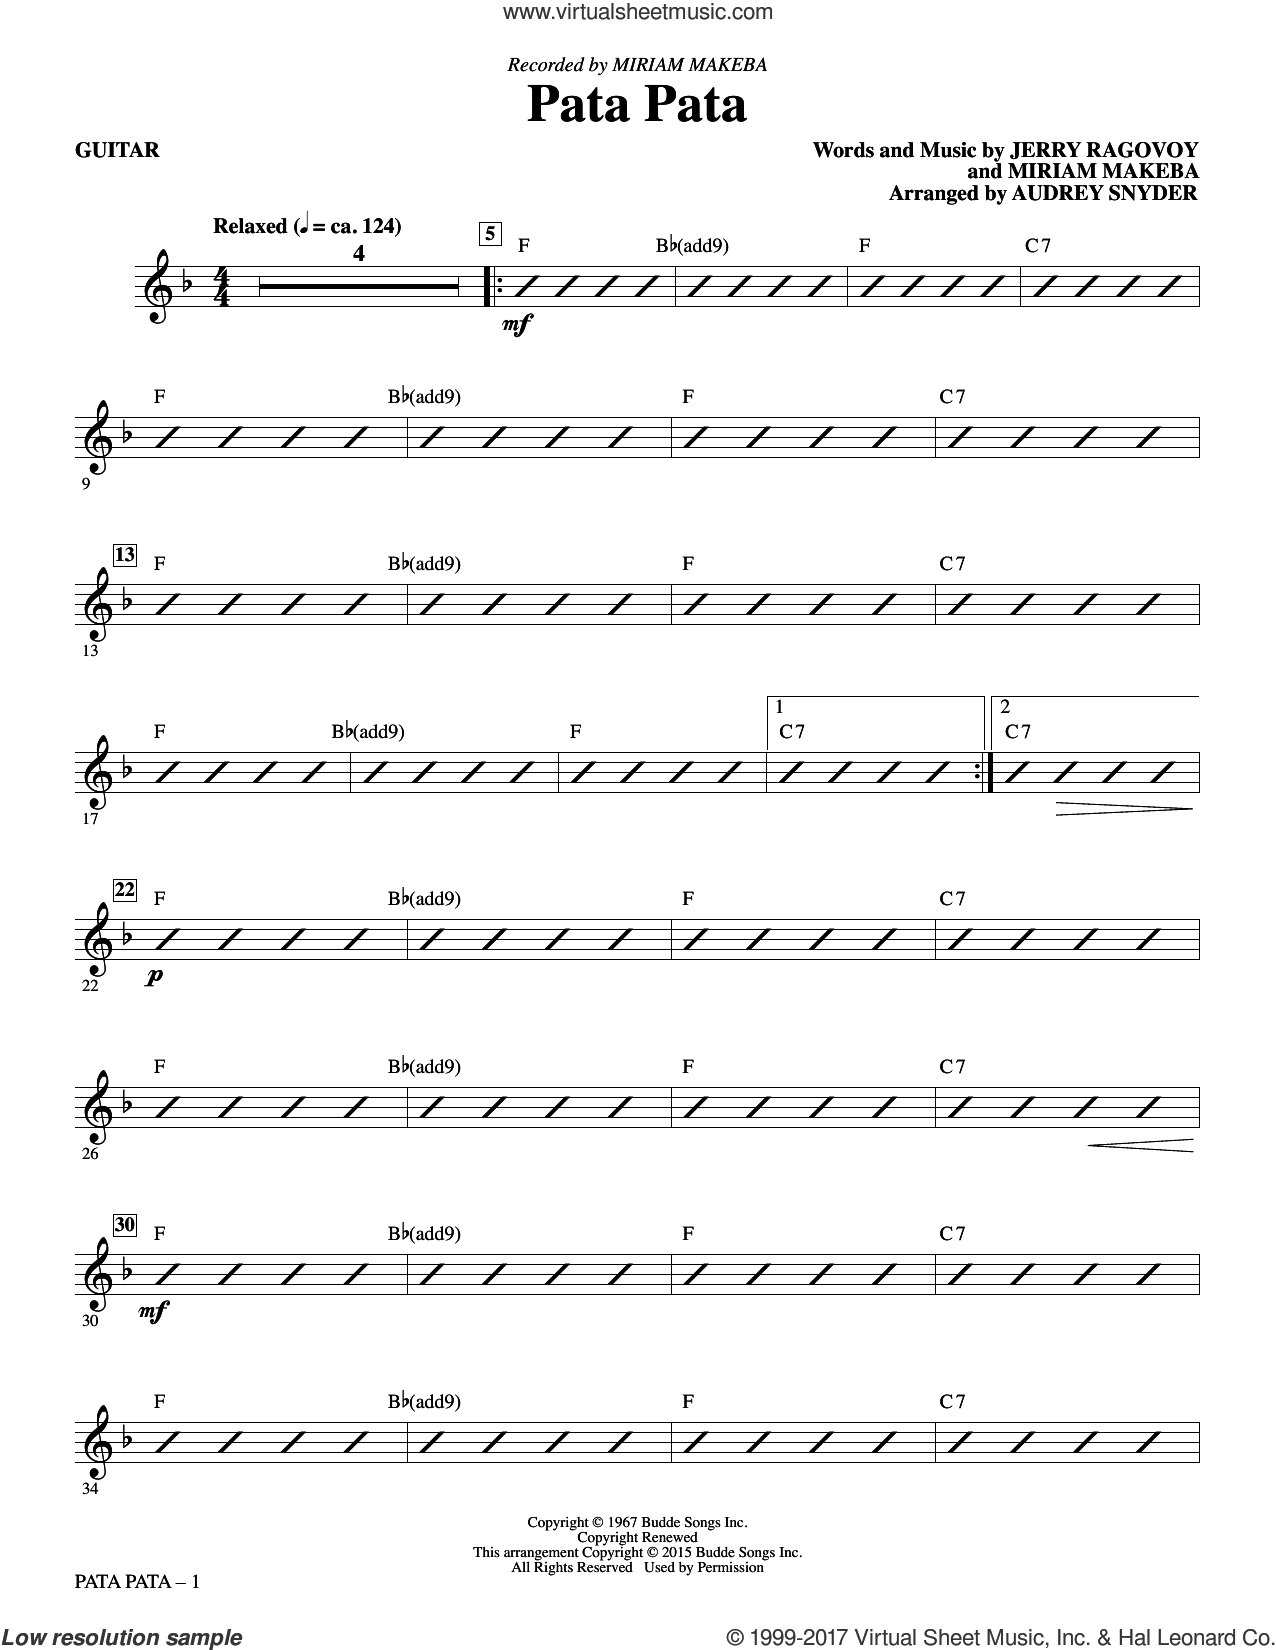 Pata Pata (complete set of parts) sheet music for orchestra/band by Audrey Snyder, Jerry Ragovoy, Miriam Makeba and Wes Montgomery, intermediate skill level